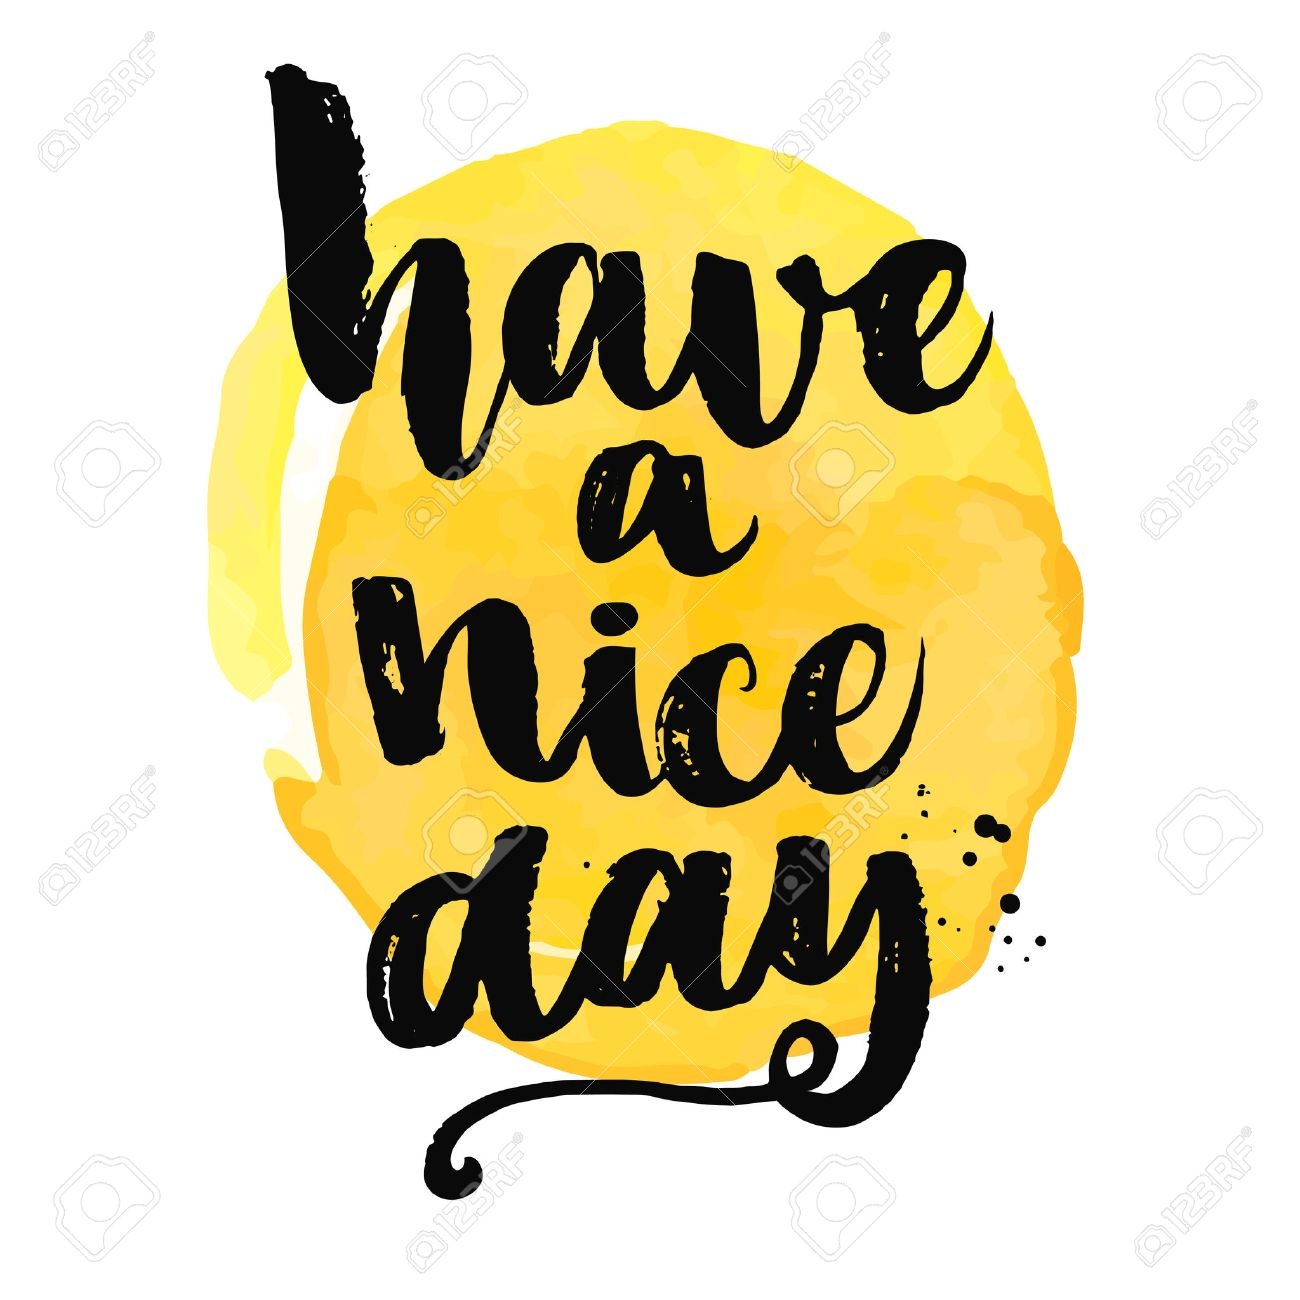 Have a nice day. Brush lettering, positive saying at yellow watercolor background. - 47452472